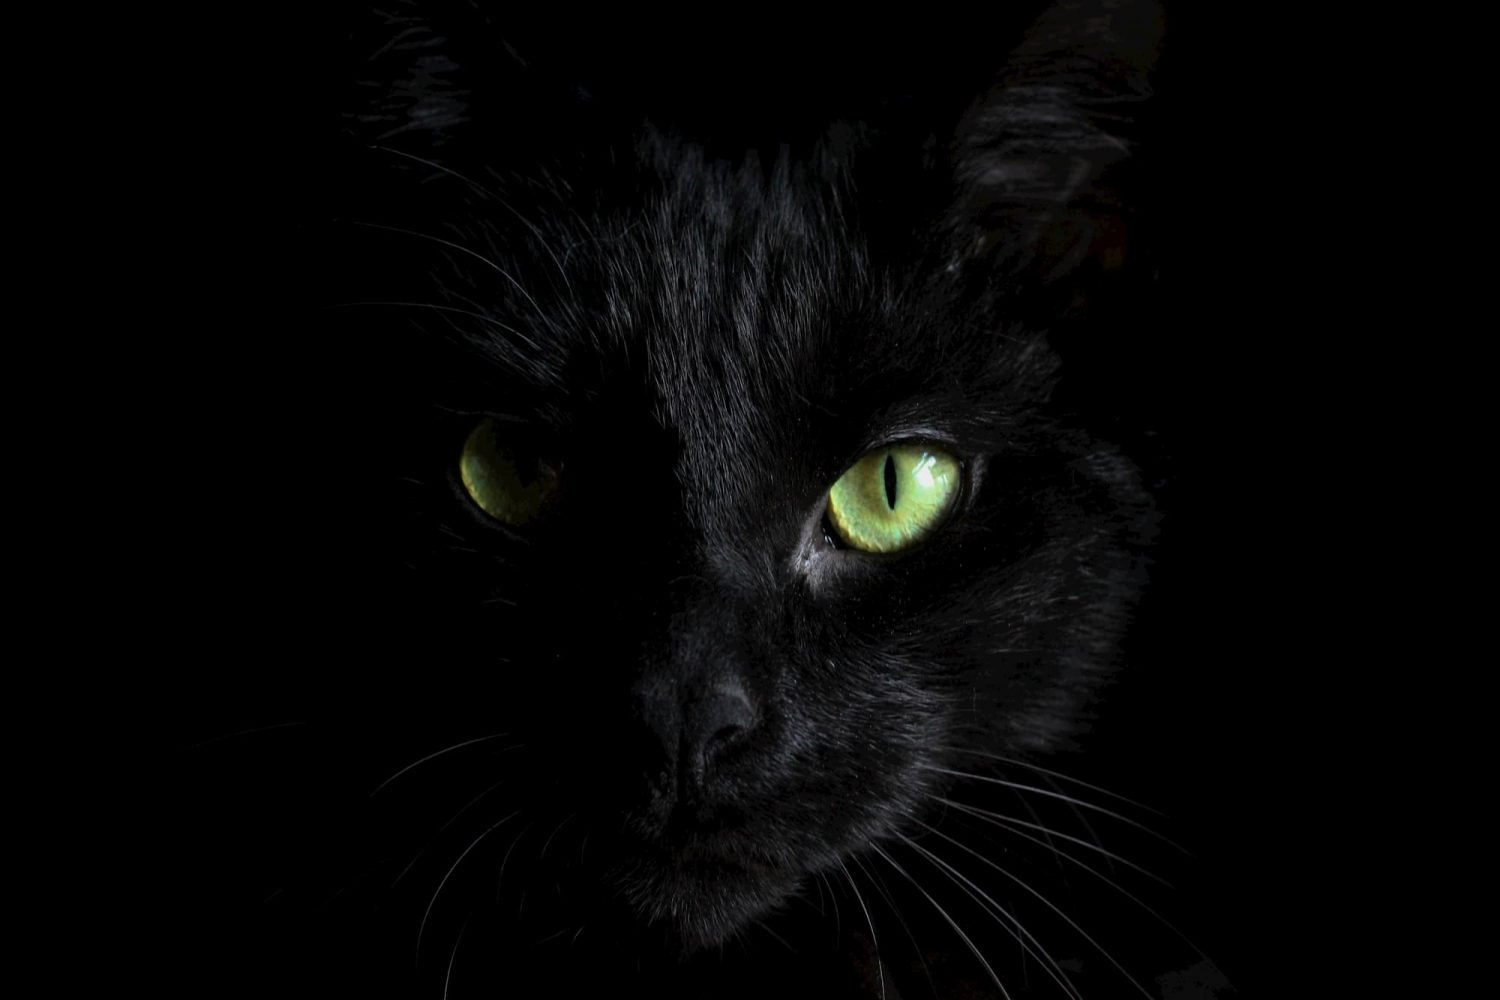 A cat in the darkness with greenish-yellow eyes